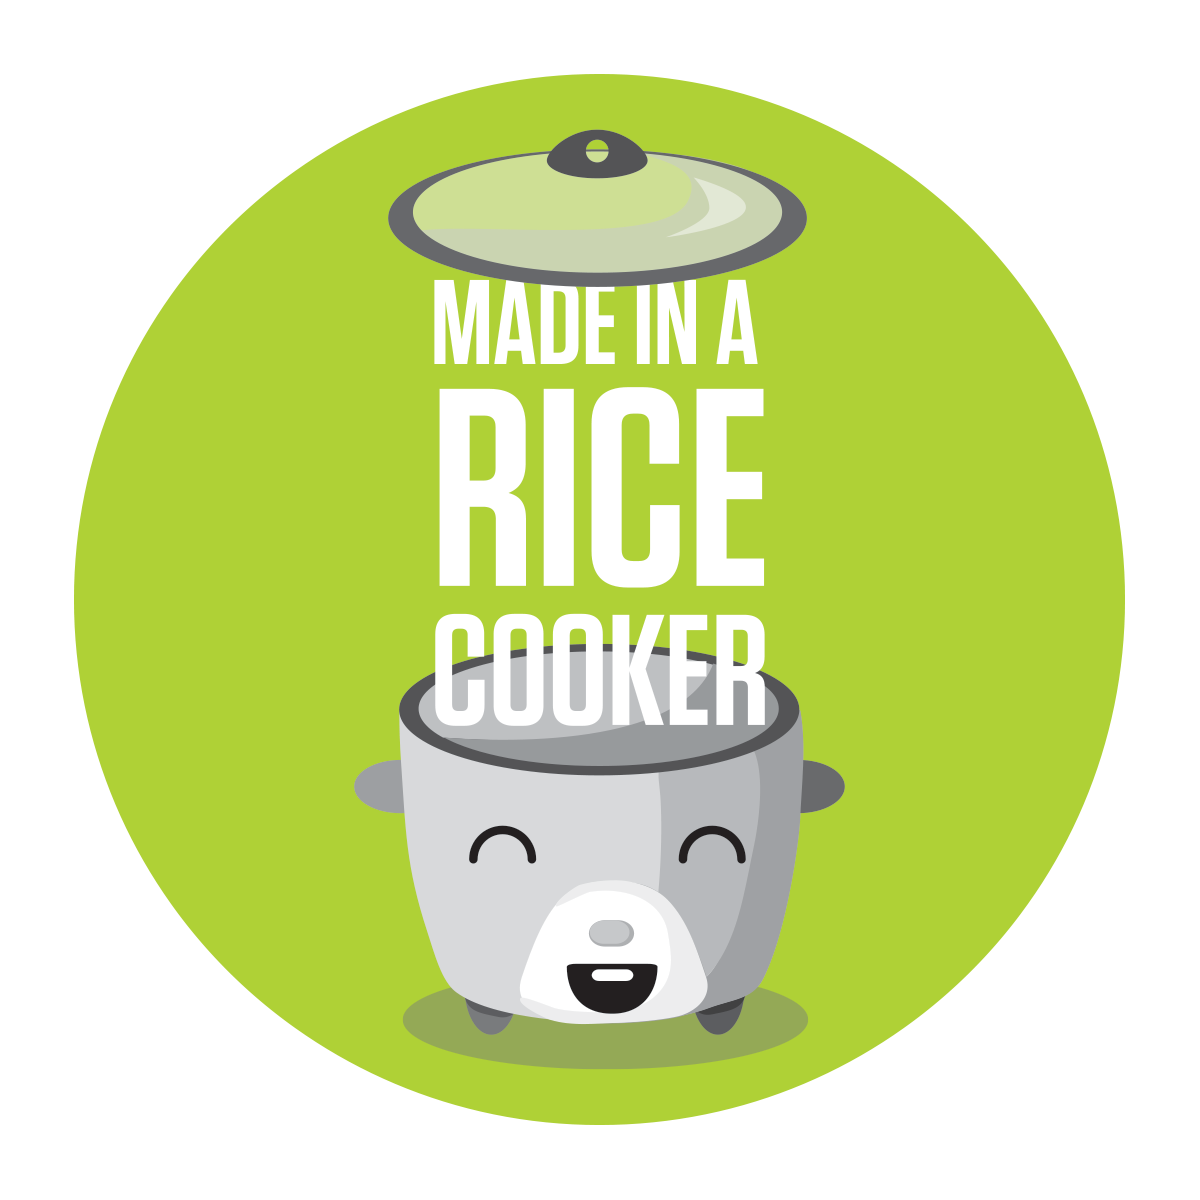 ricecooker_ricecooker